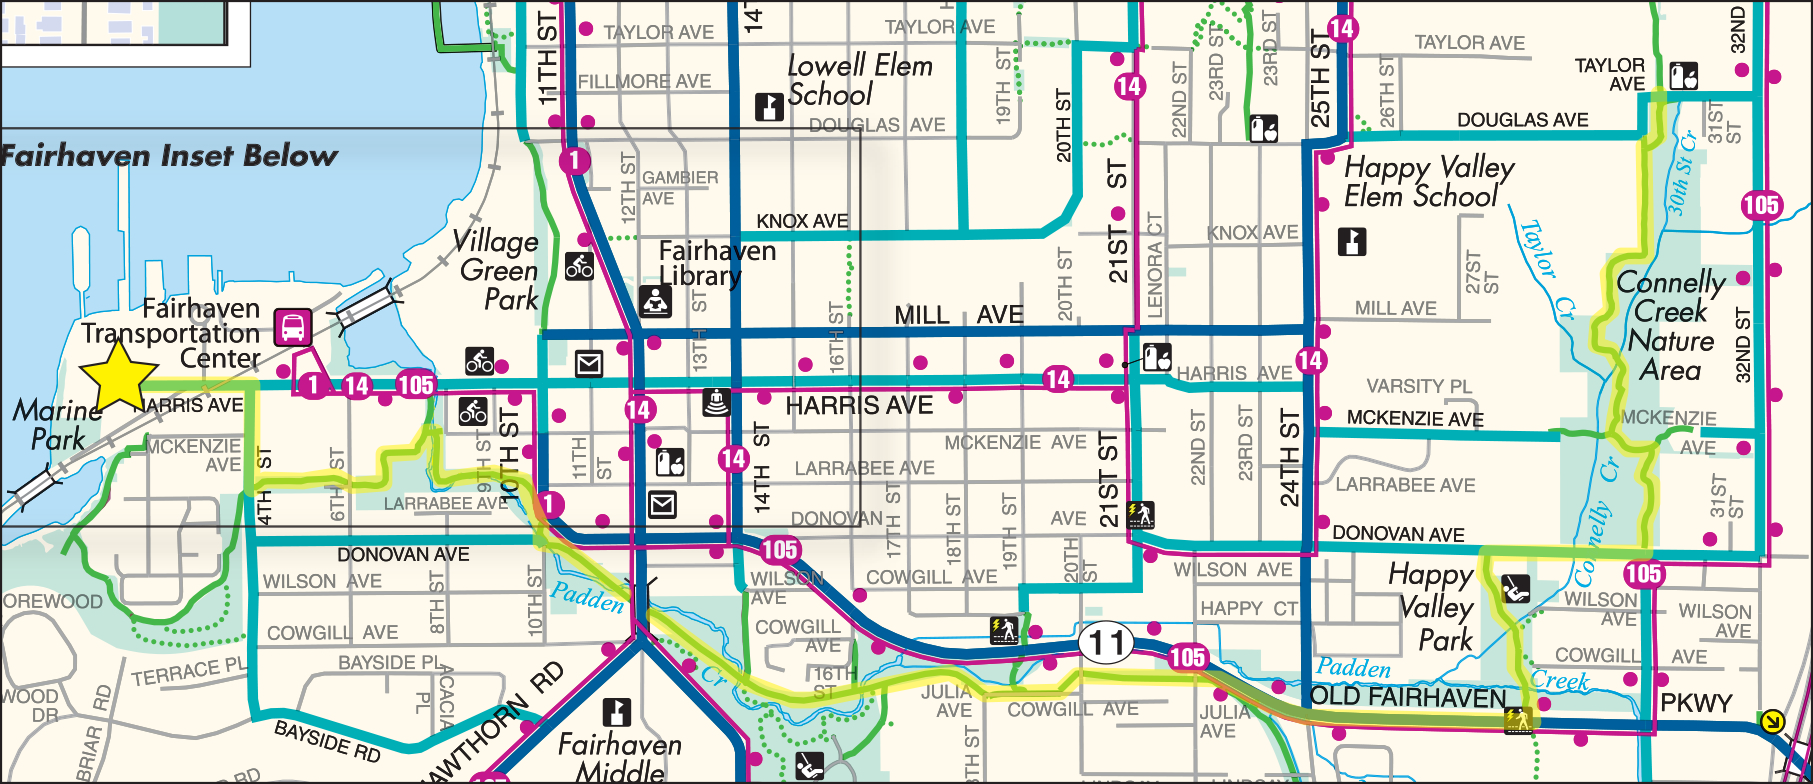 Marine Park to Connelly Creek Trail Ride Map